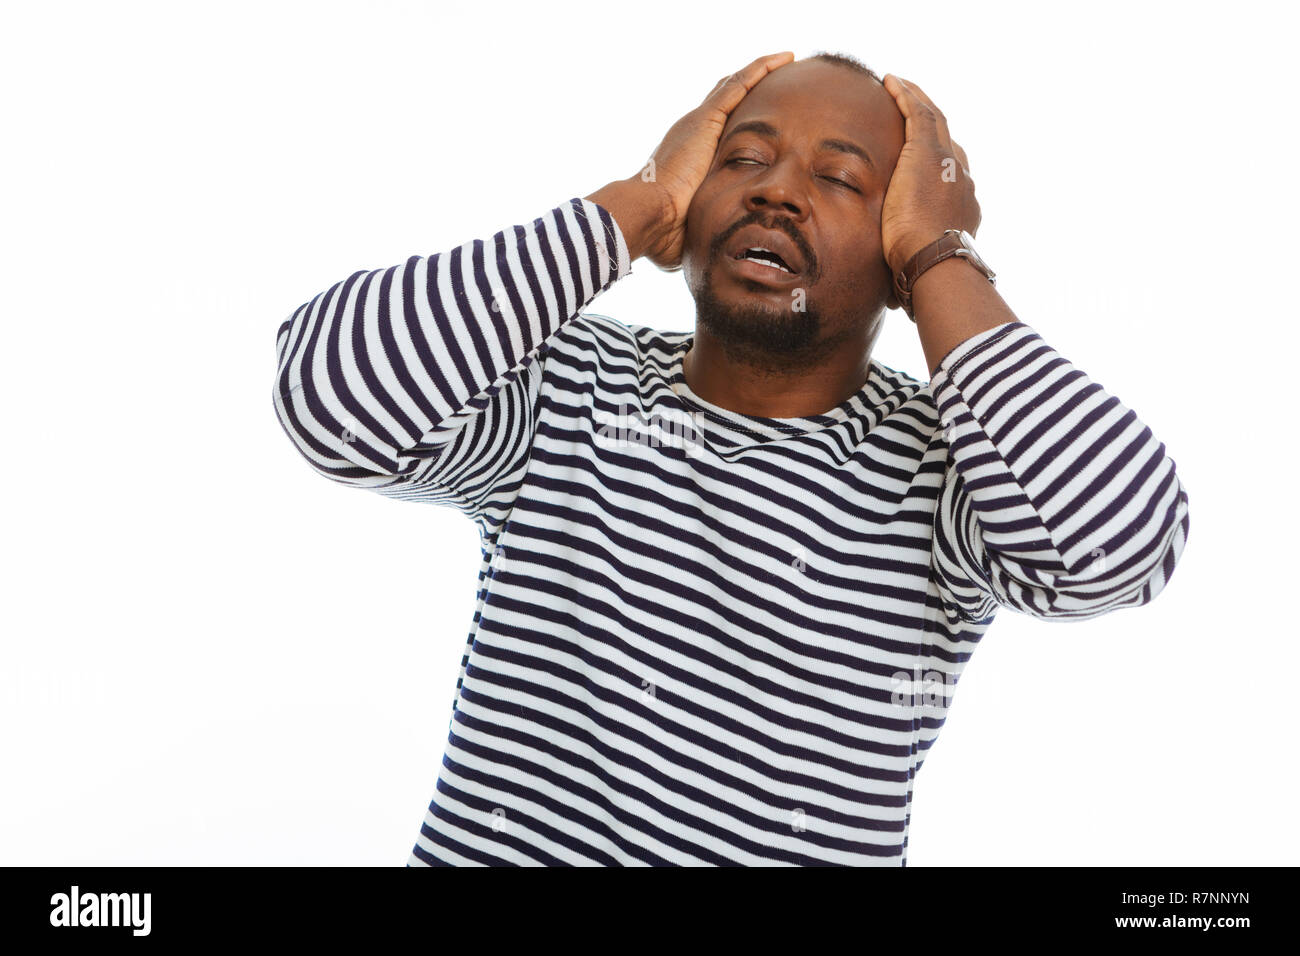 Cheerless afro American man holding his head - Stock Image